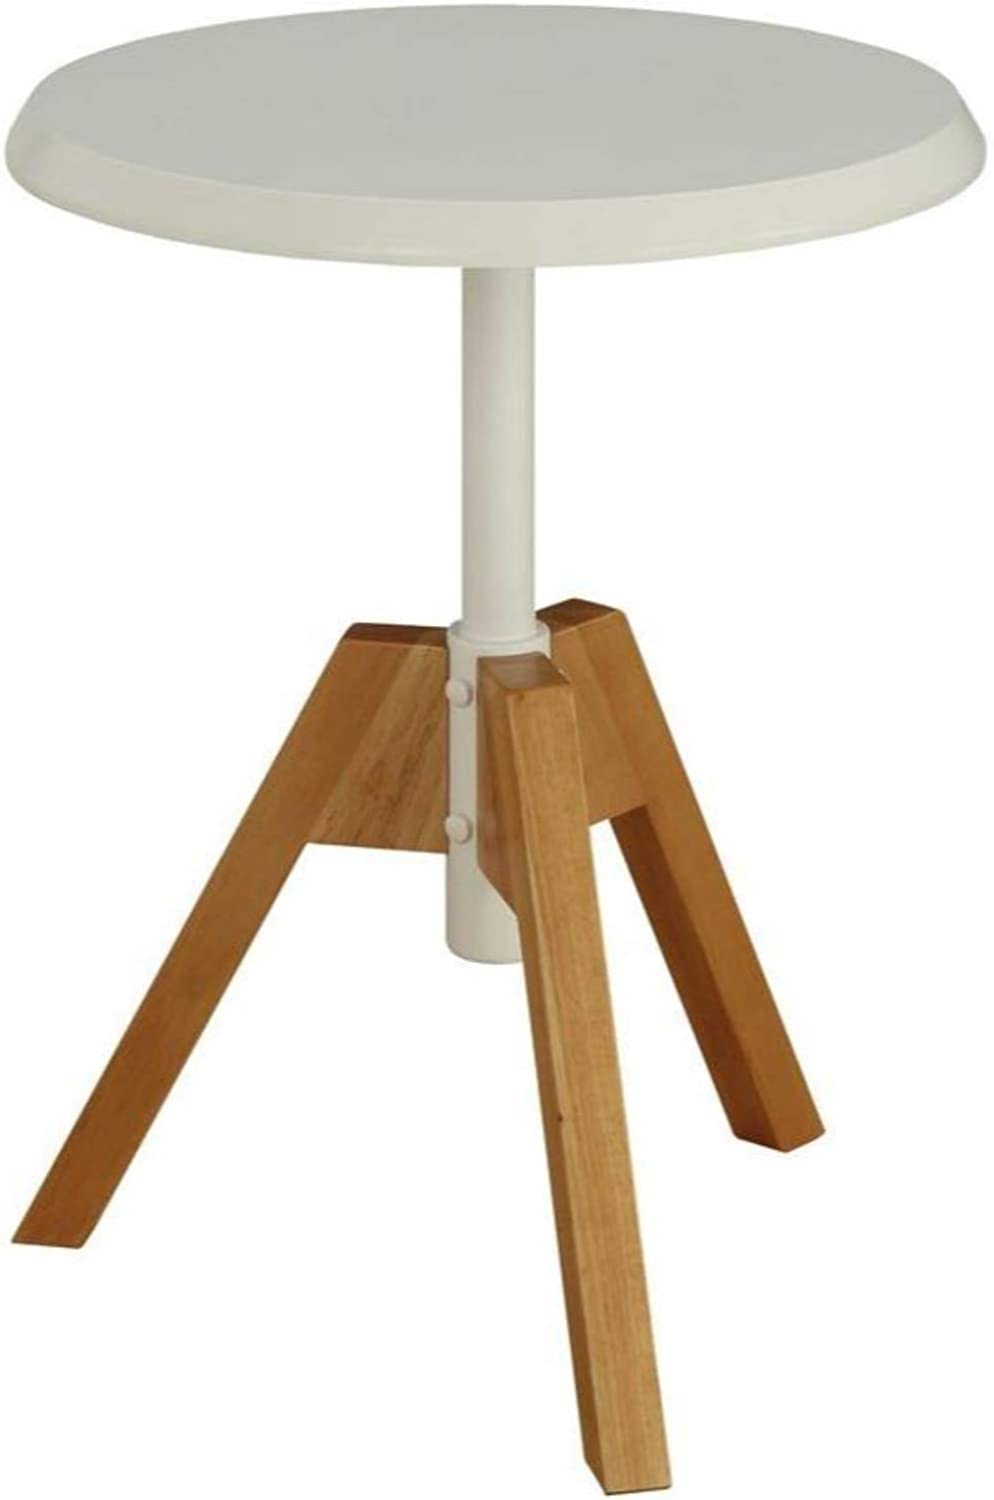 Benzara BM186943 Wooden End Table with Tripod Legs, Brown and White